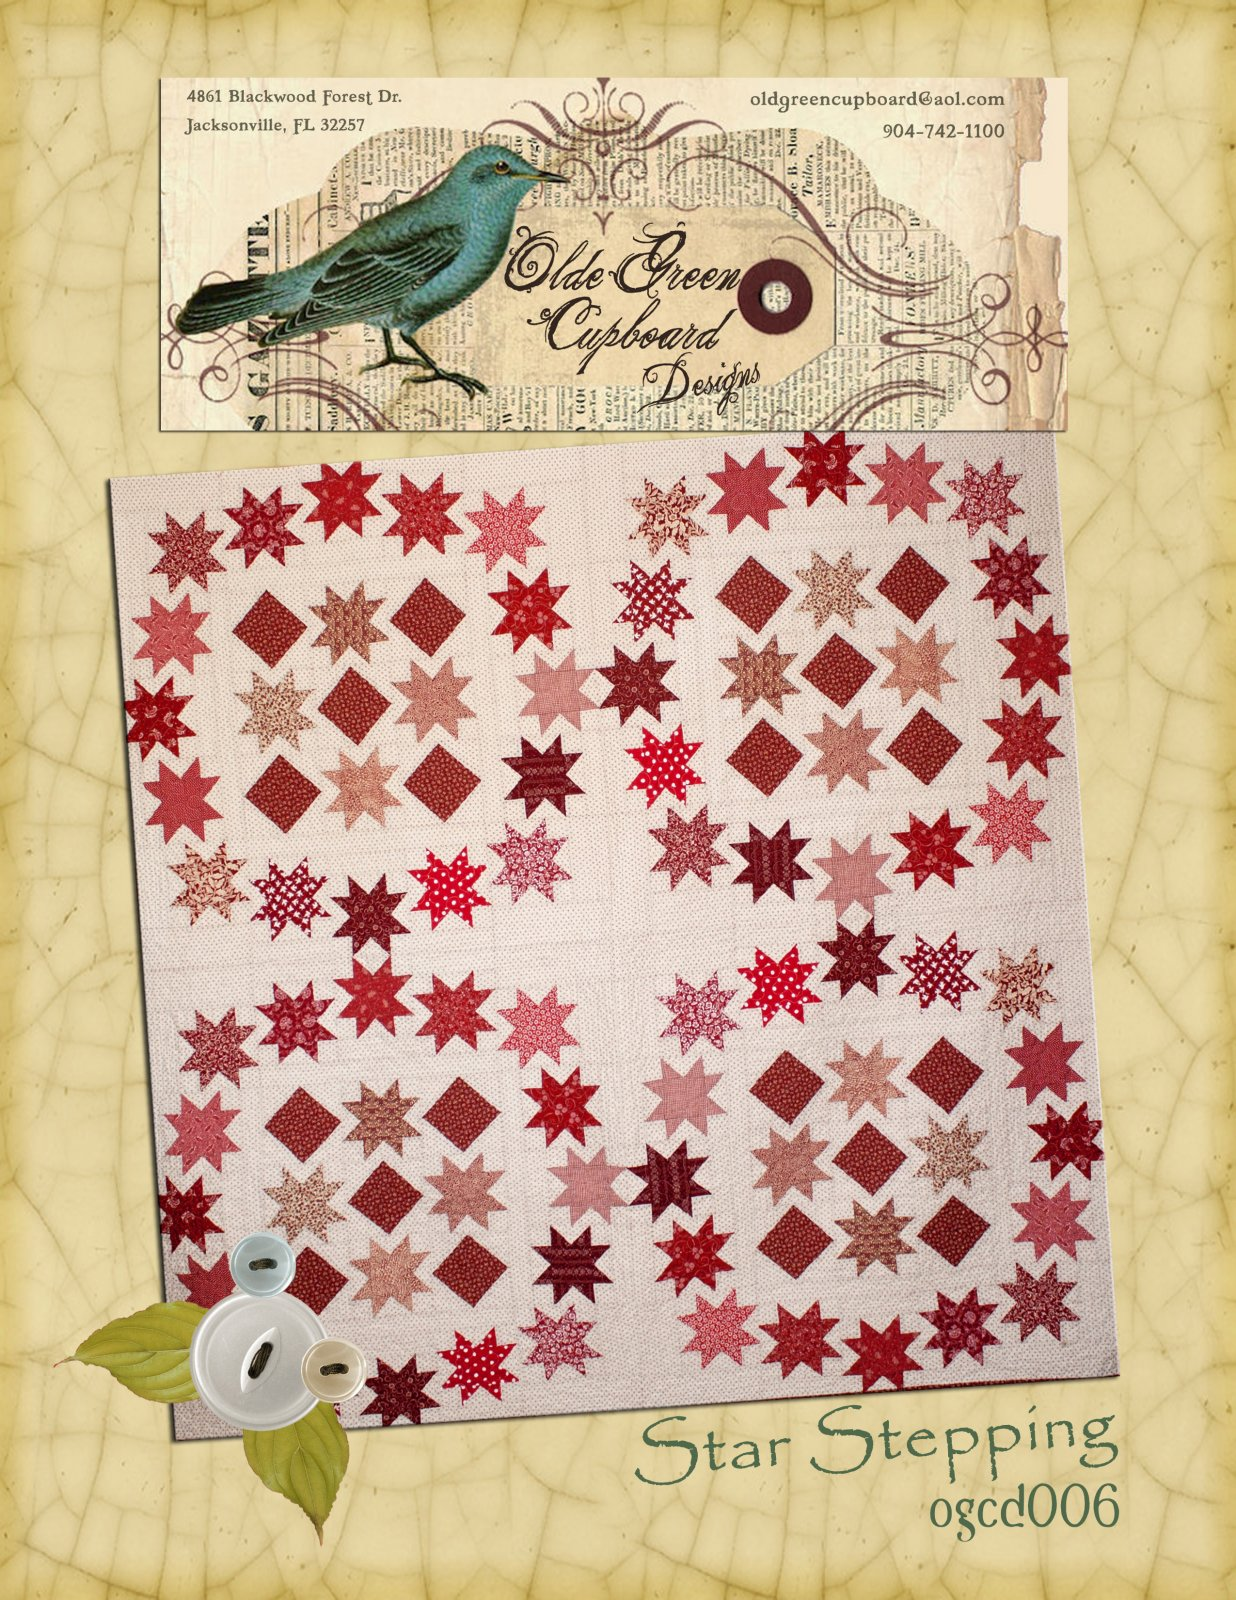 Star Stepping Quilt Pattern - OGCD06